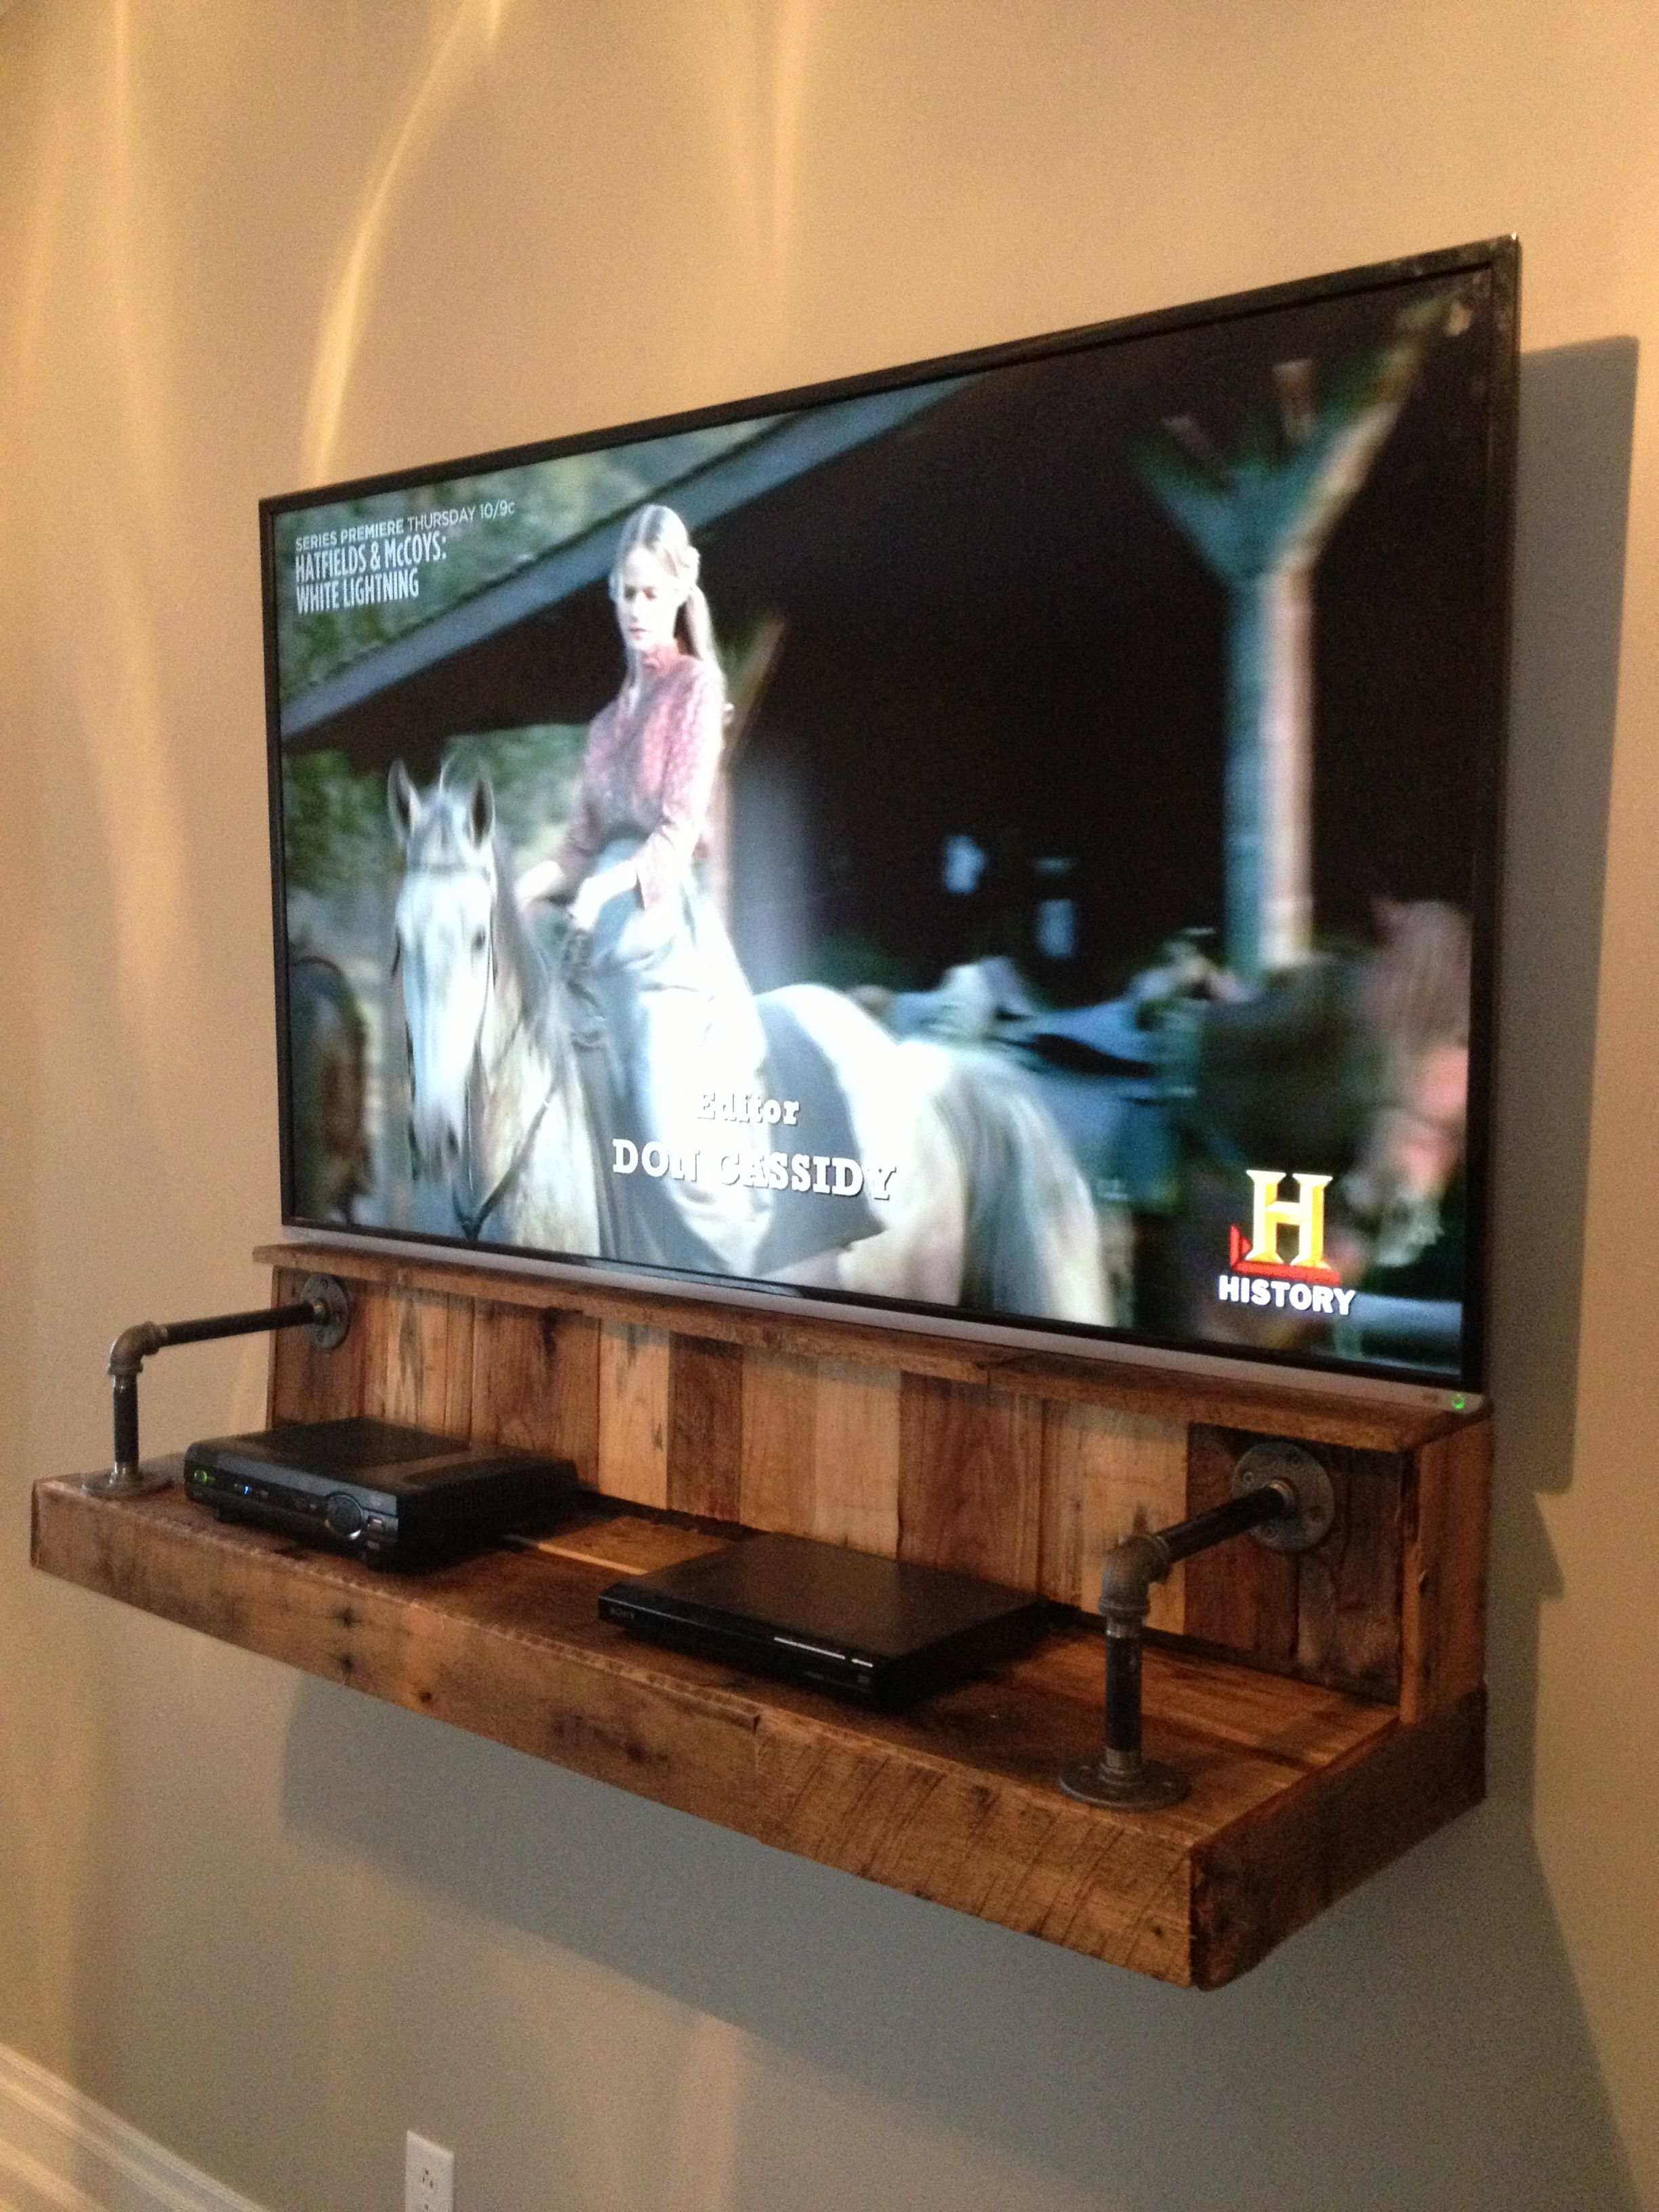 Best Of Tv Holder On the Wall